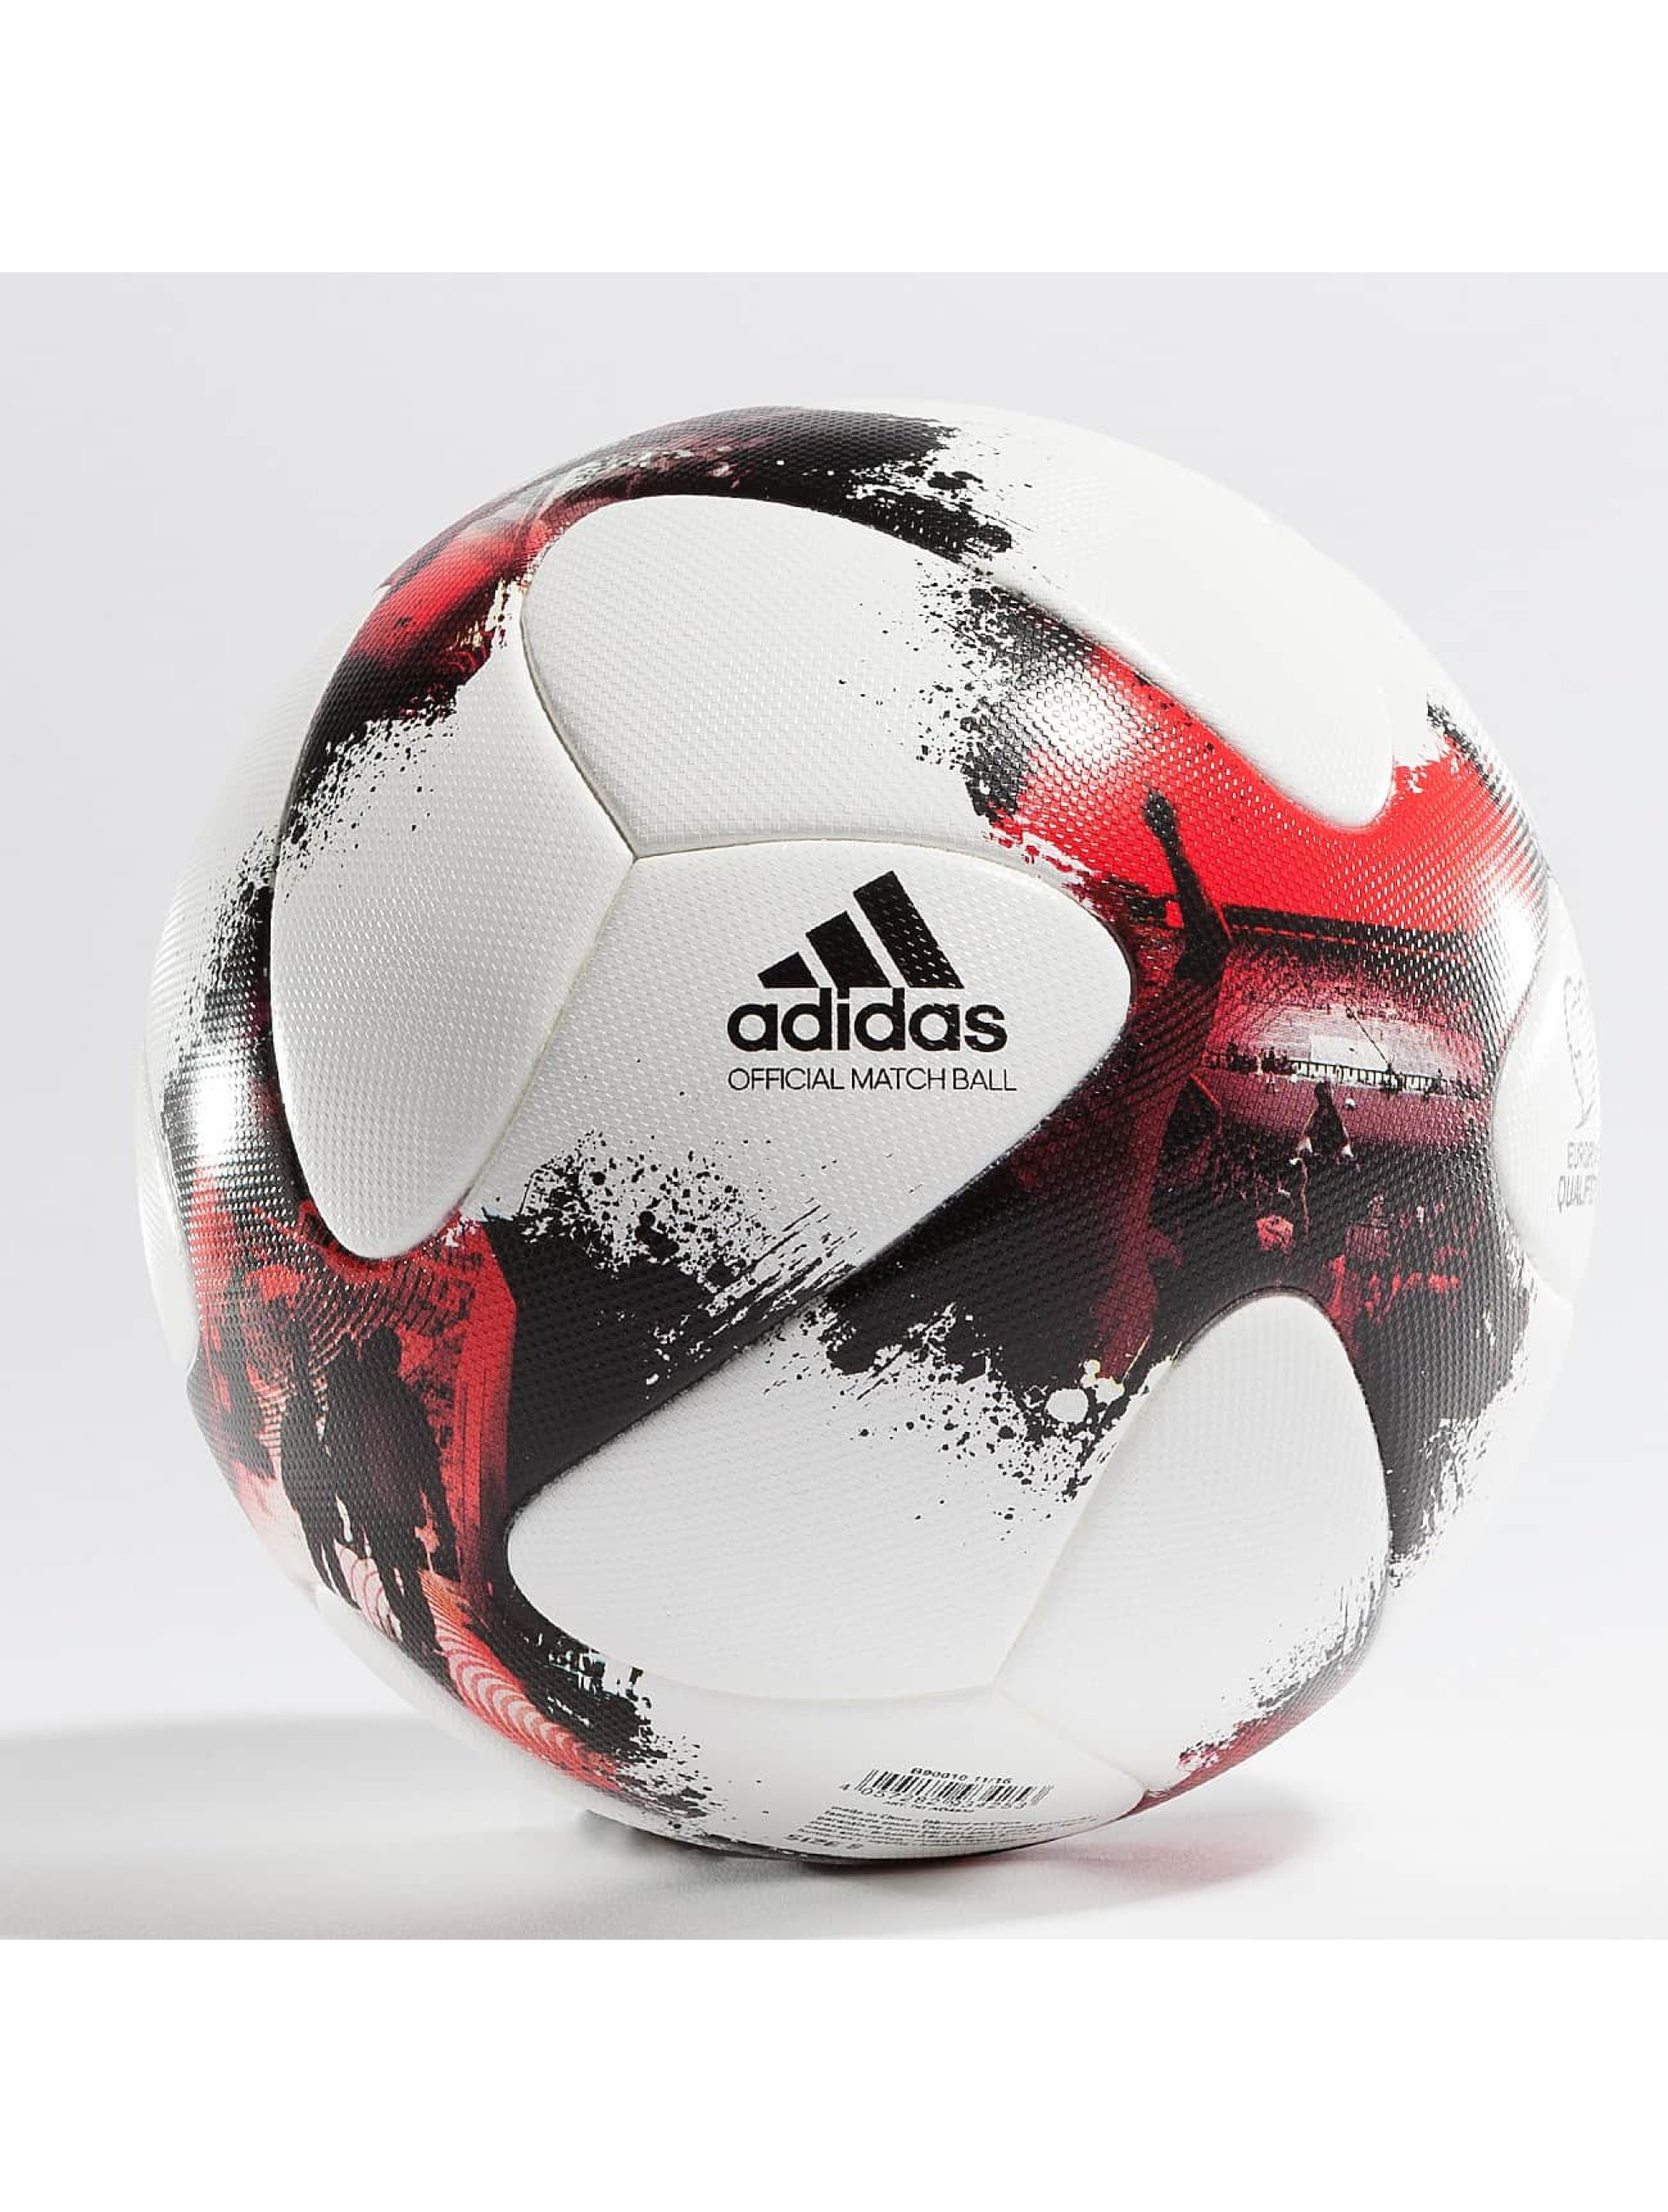 adidas Performance Männer,Frauen,Kinder Ball European Qualifiers Offical Match Ball in weiß